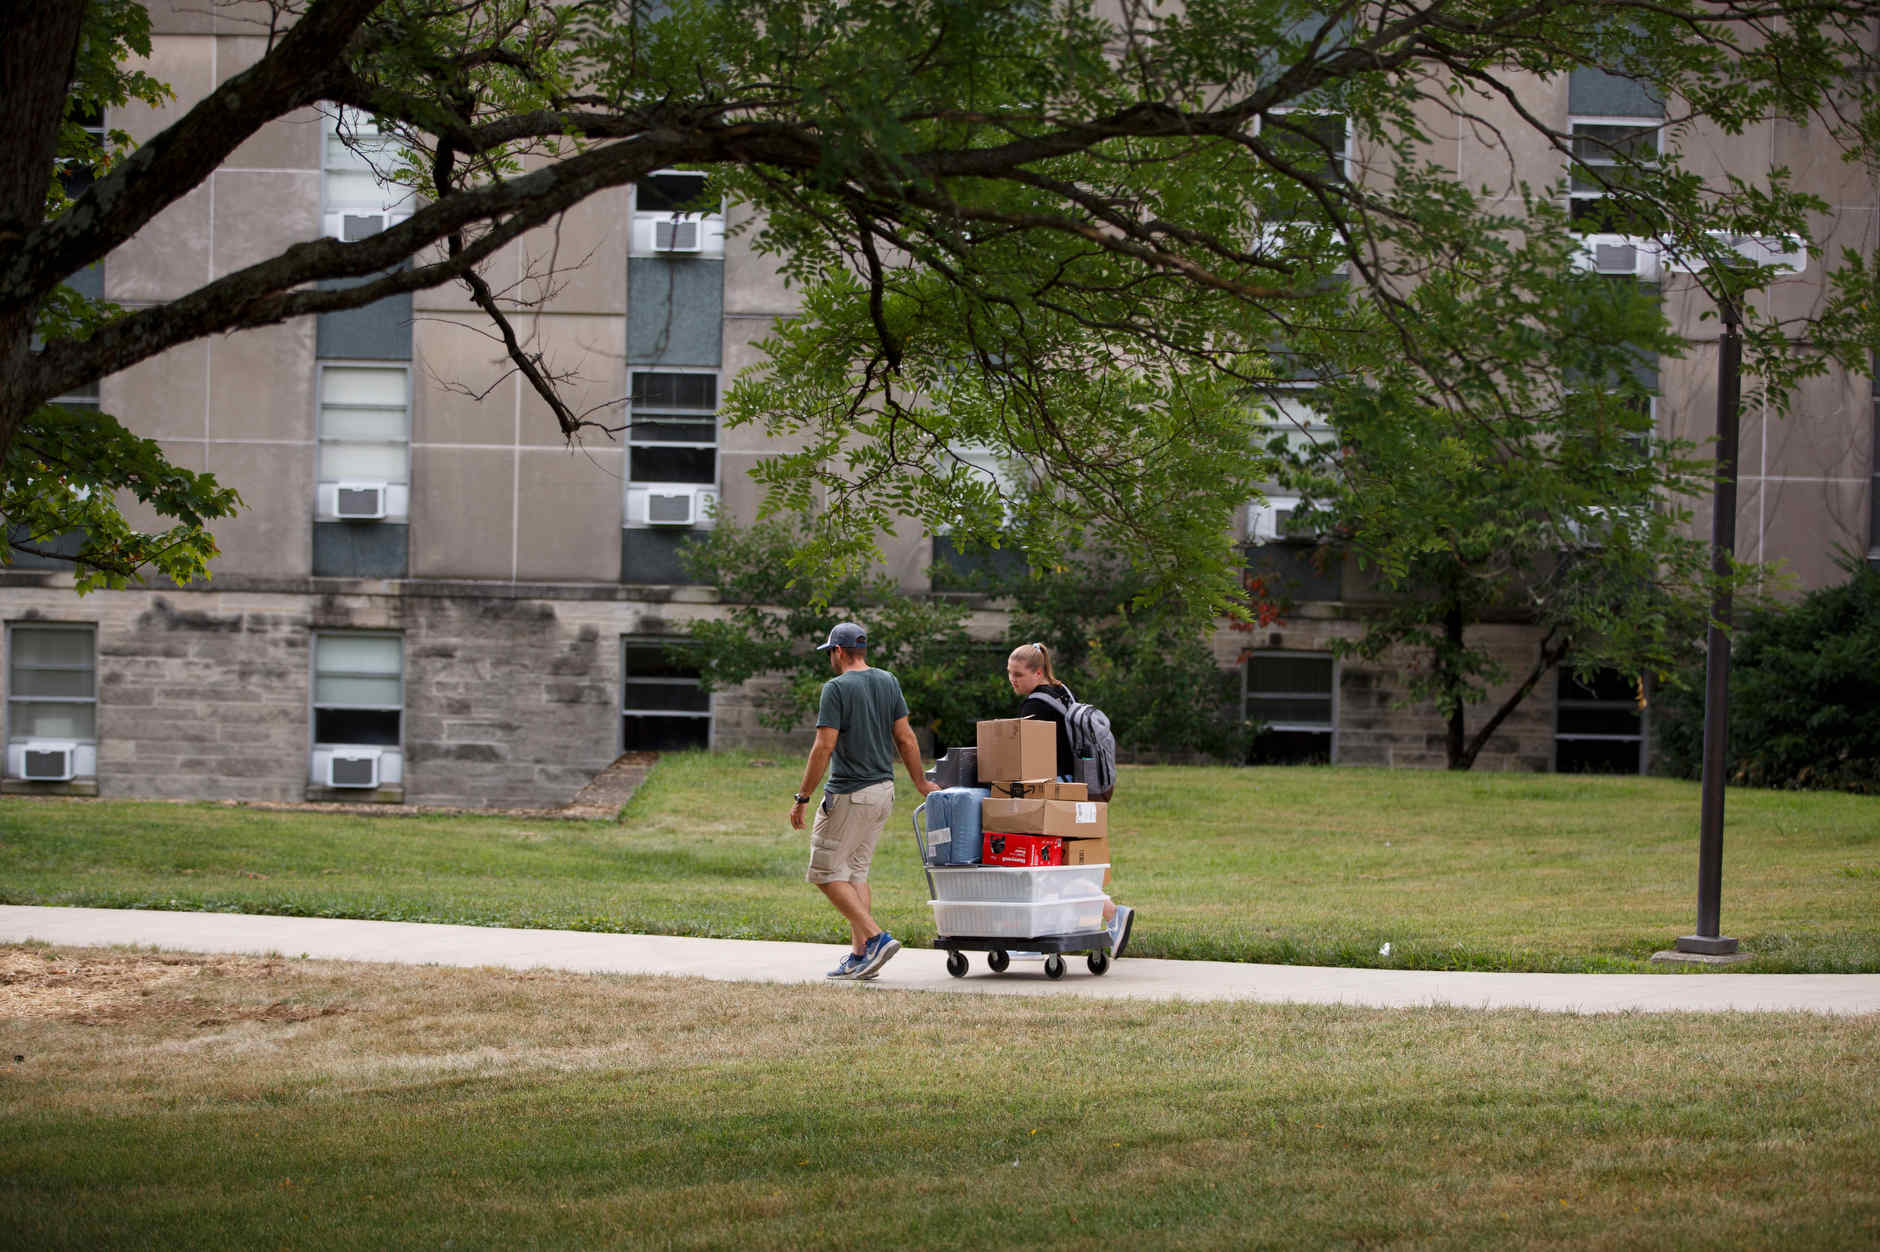 A student wheels her belongs to her room at Wright Quad during IU Bloomington move-in on Tuesday, Aug. 20, 2019. (James Brosher/Indiana University)